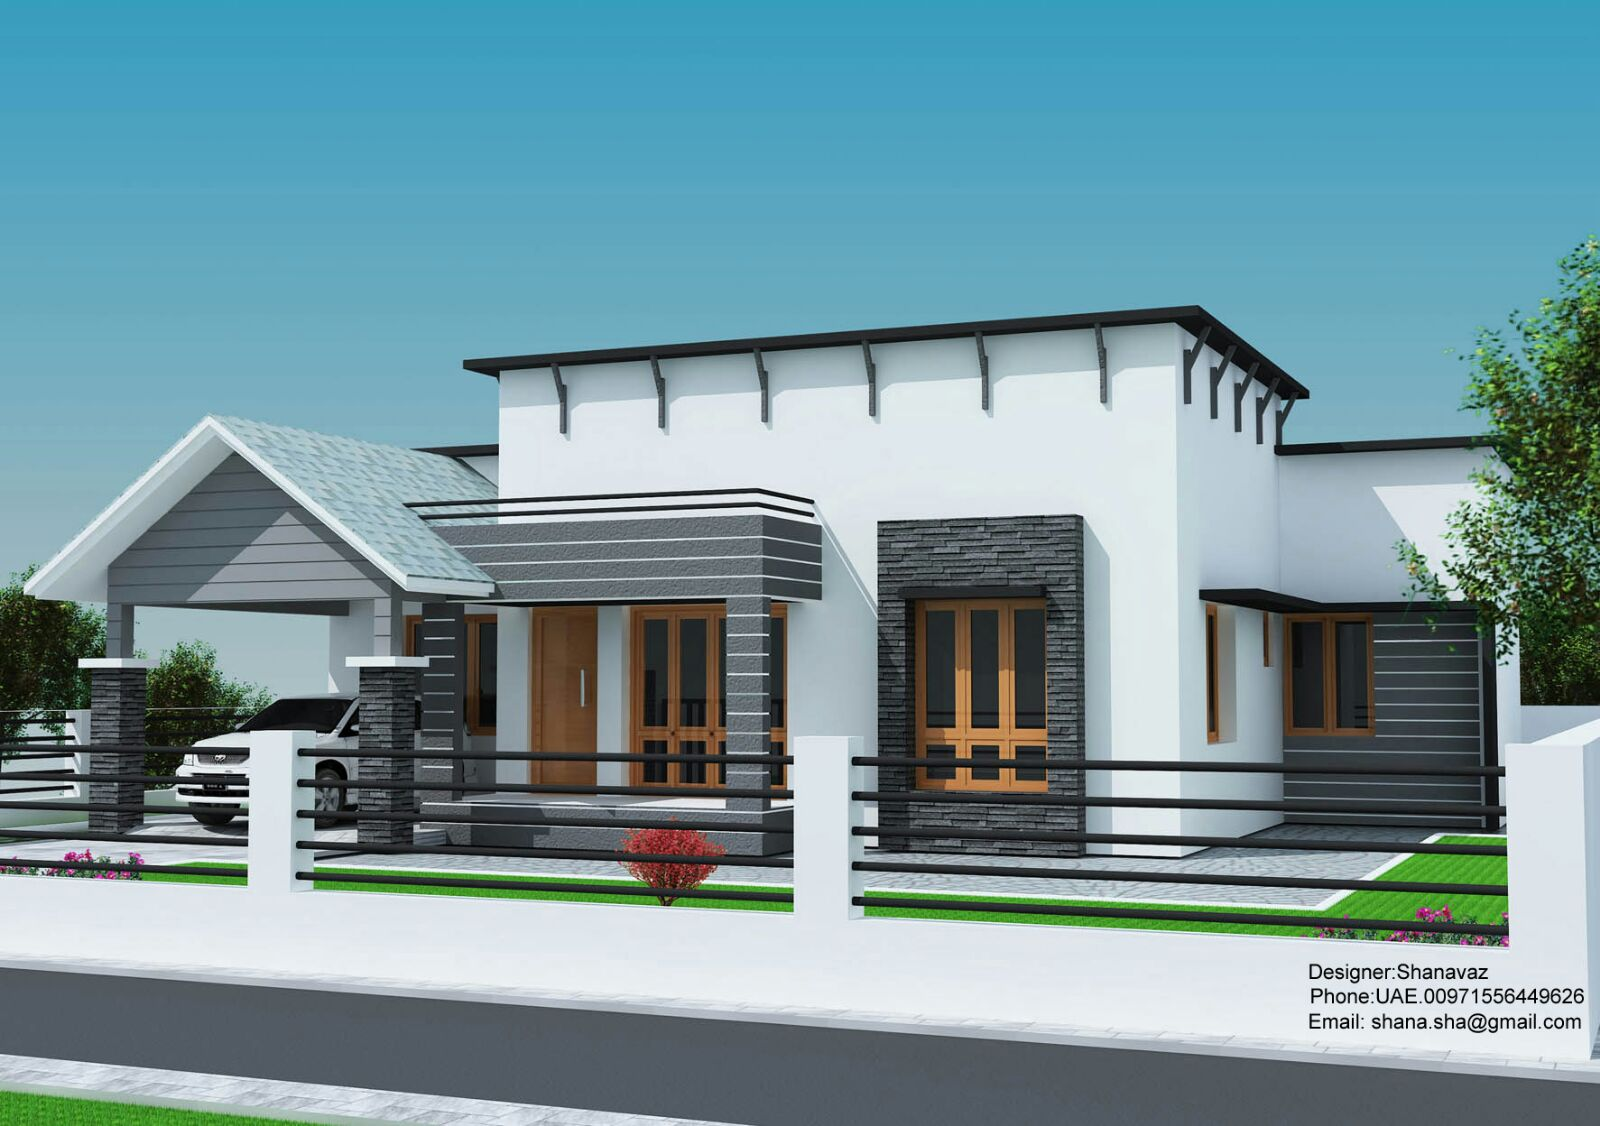 1300 sq ft single floor contemporary home design for Home designs single floor